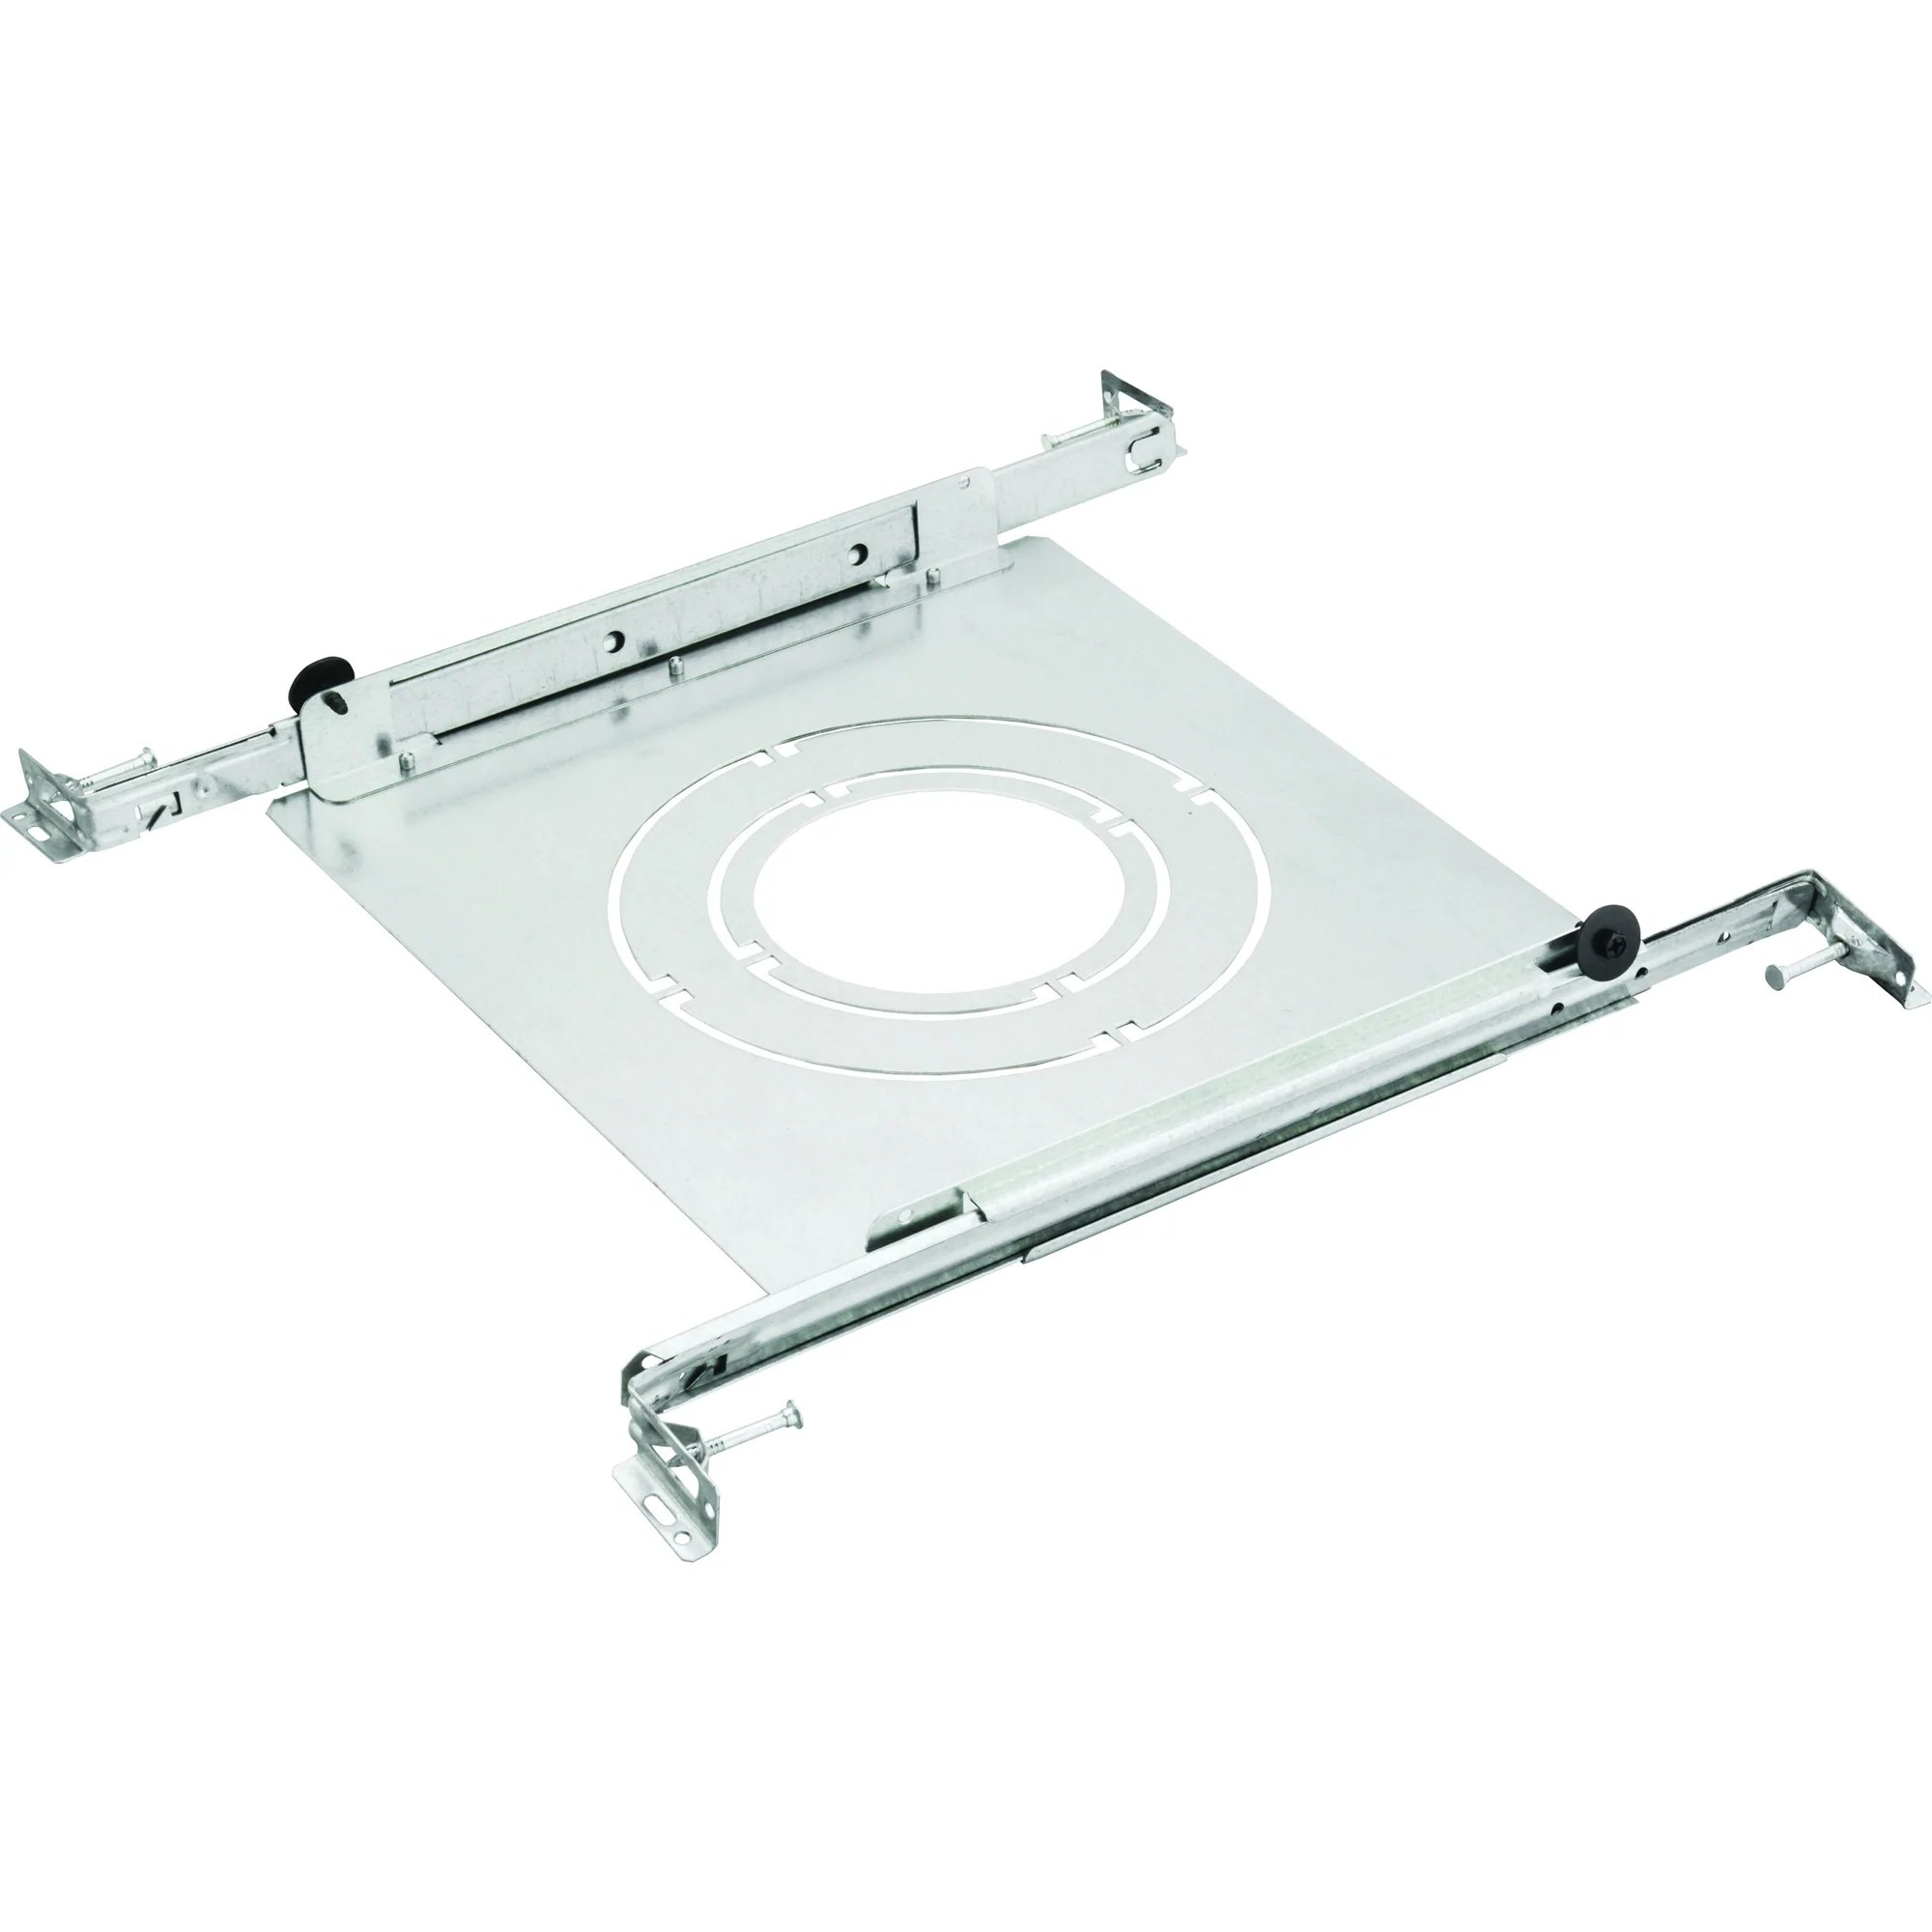 lithonia lighting wf8643 universal new construction pan for 3 in 8 in wafers led downlight